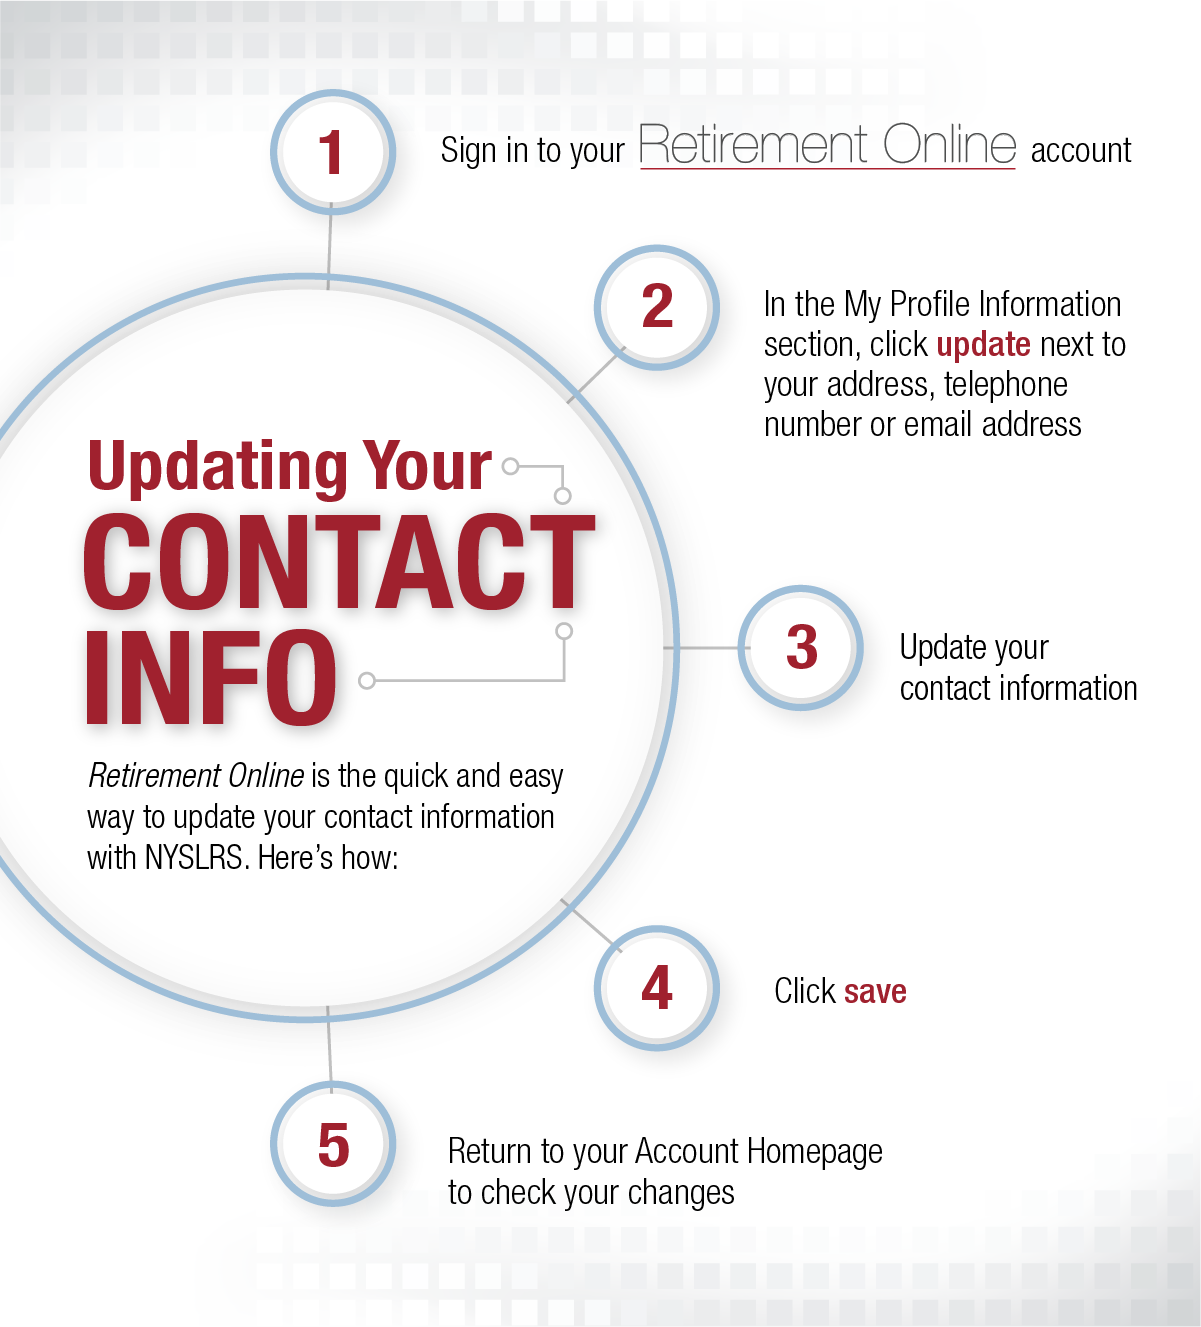 update your mailing address and contact info in Retirement Online